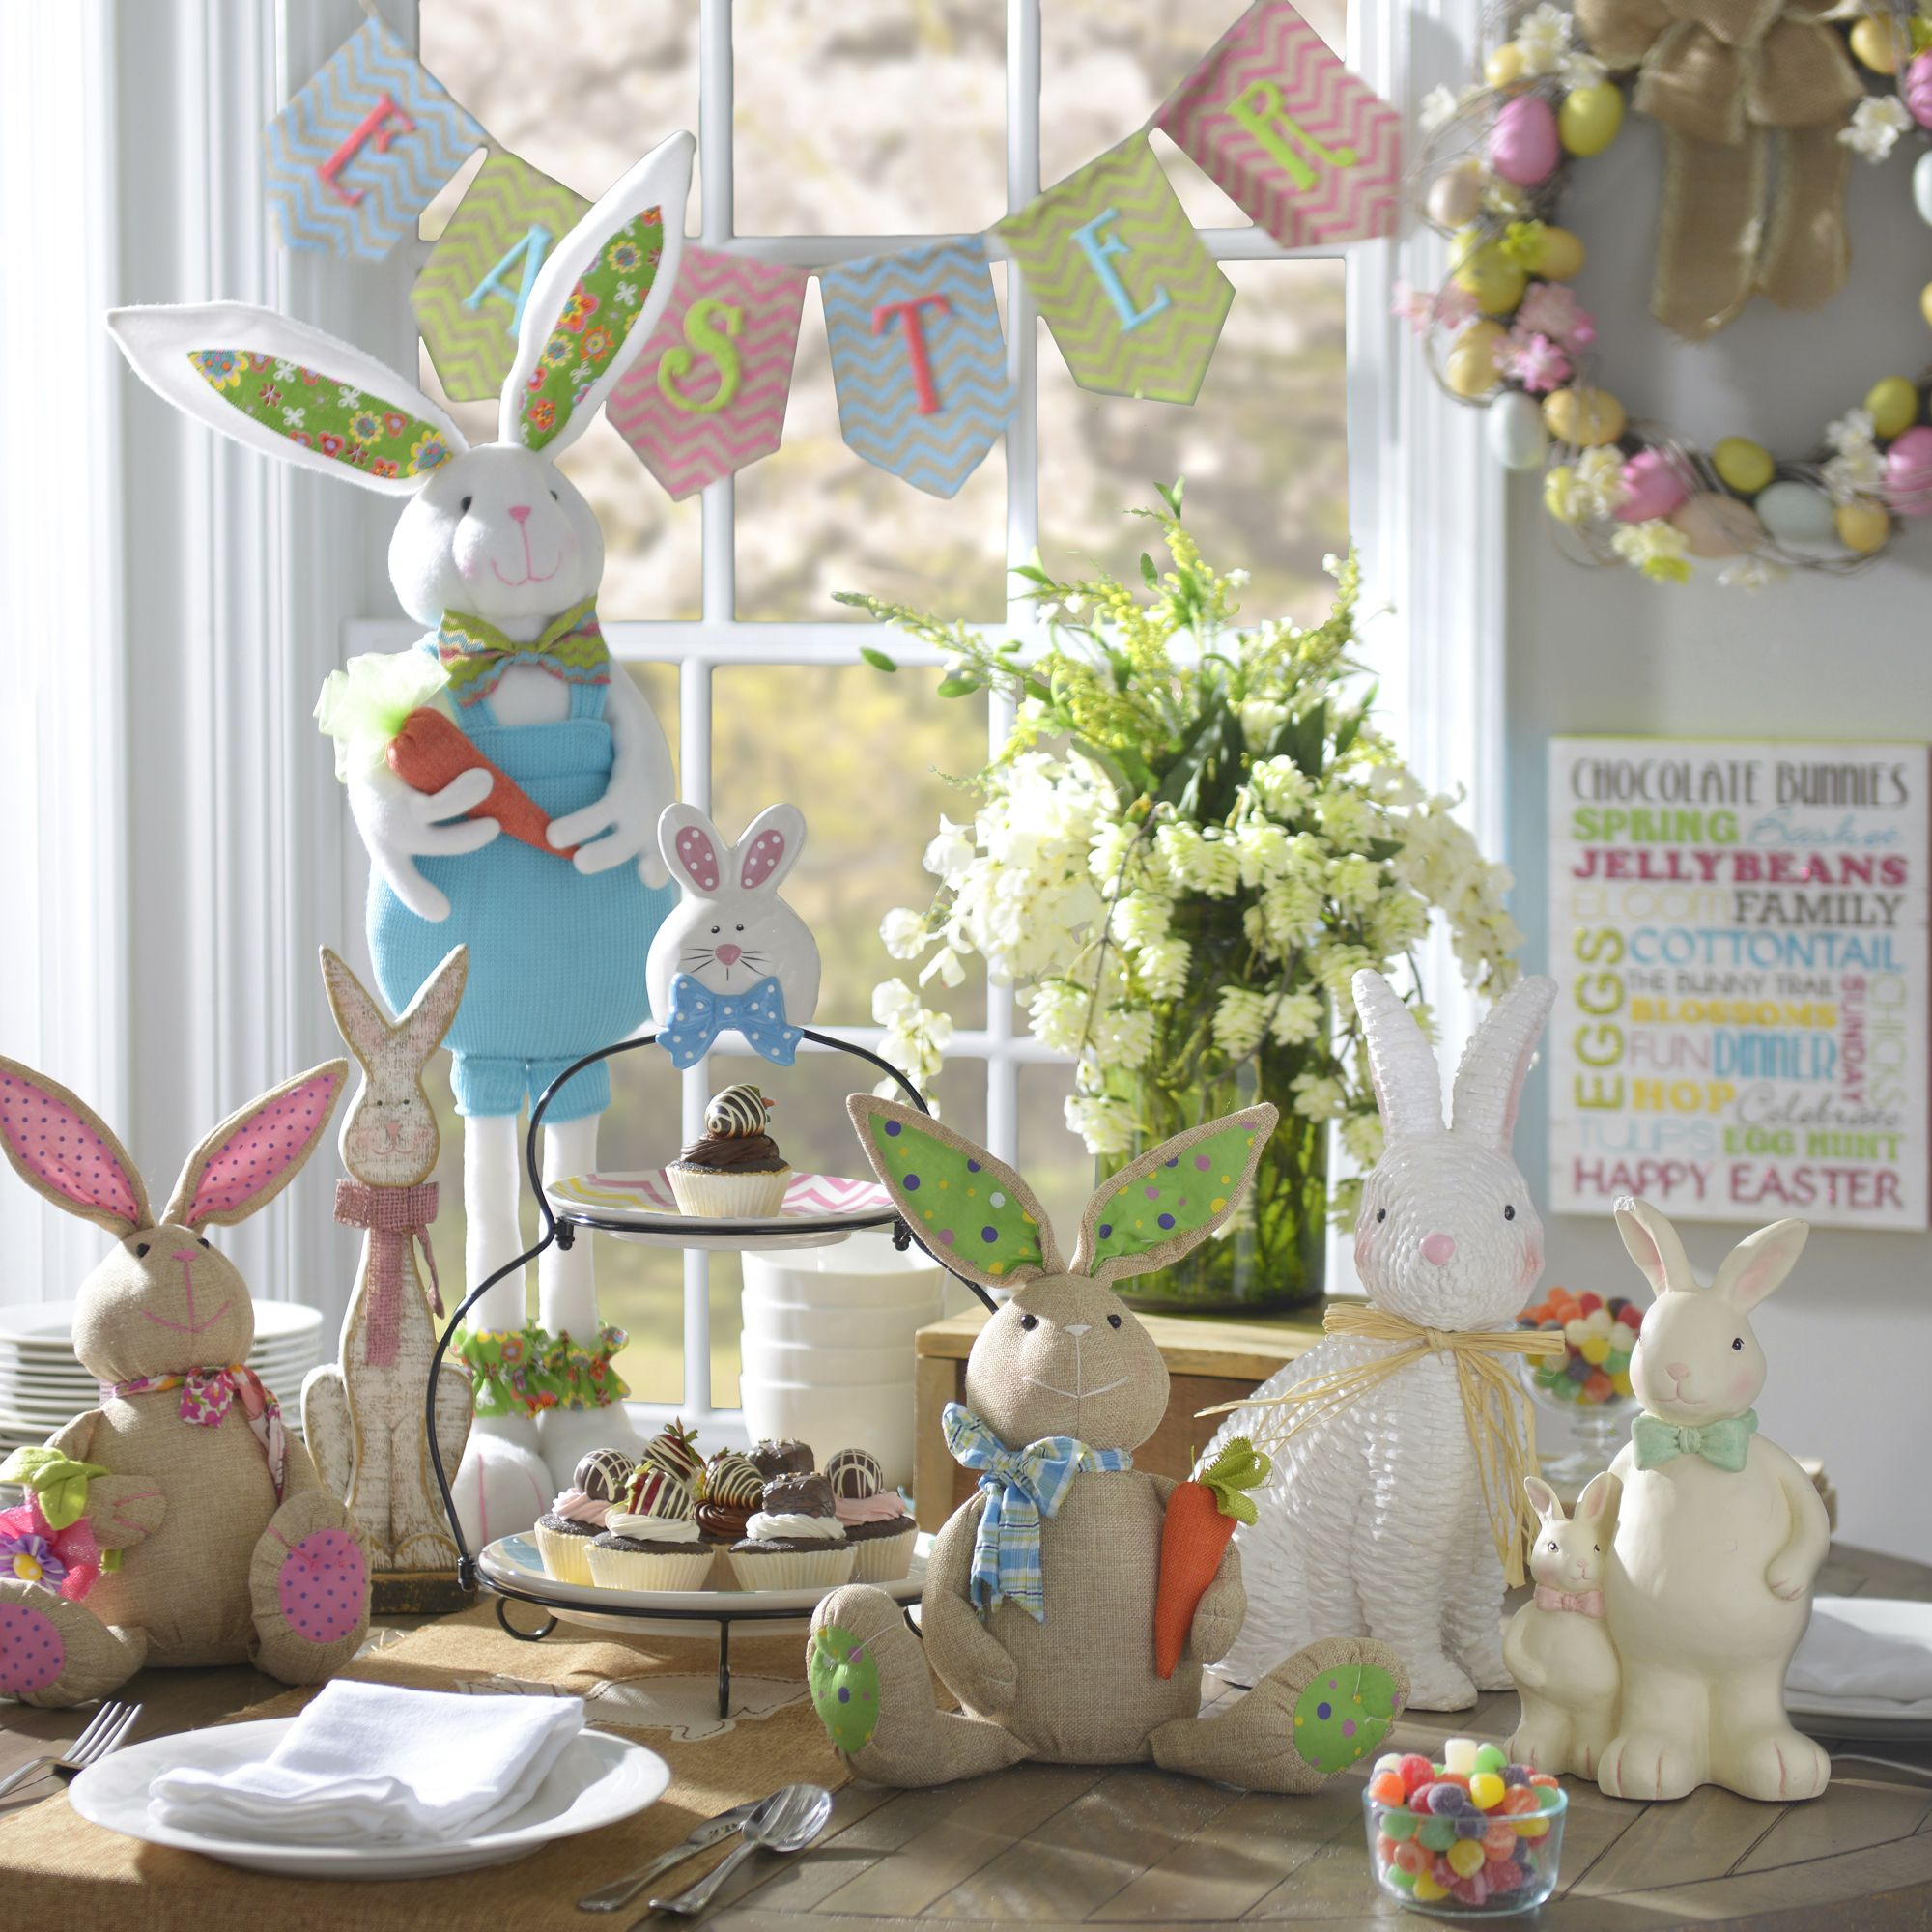 Count On Kirkland S For Your Easter Home Decor With Cheerful Colors Friendly Bunnies And Basket Diy Easter Decorations Easter Centerpieces Easter Tablescapes